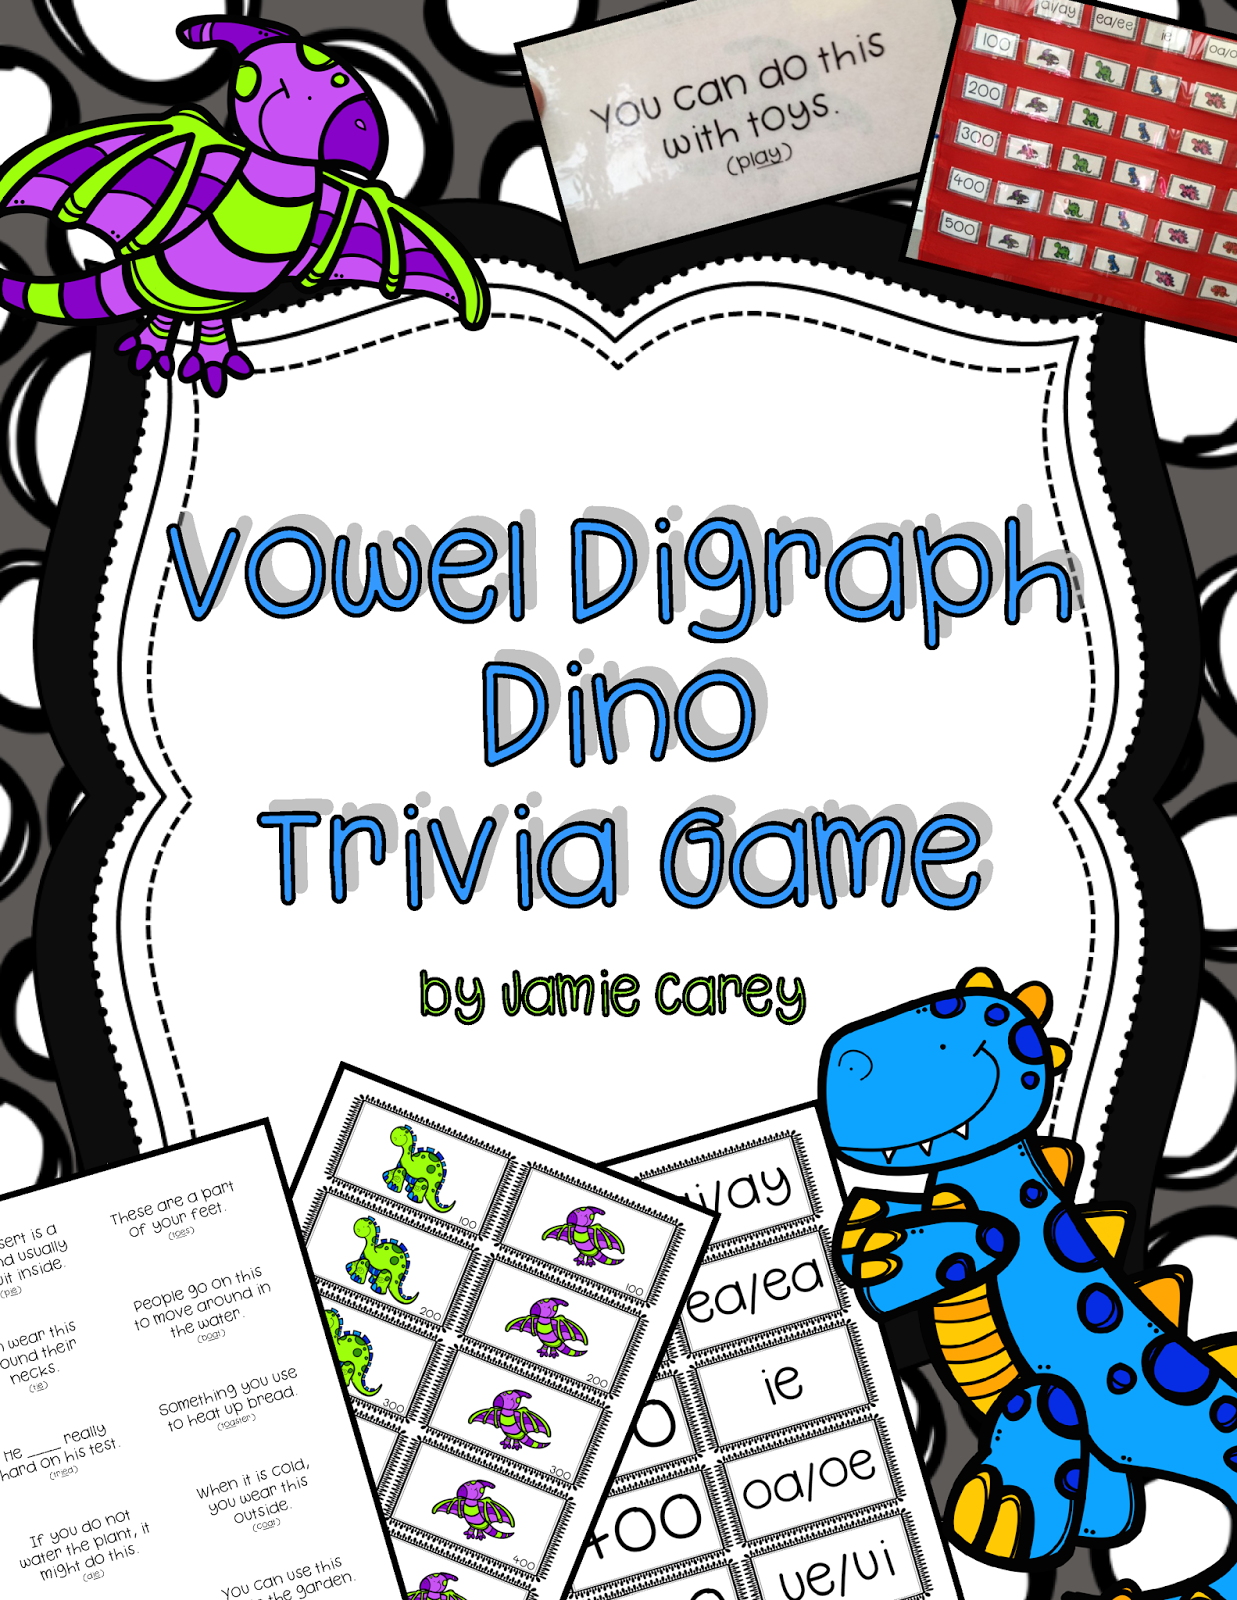 https://www.teacherspayteachers.com/Product/Vowel-Digraph-Dino-Trivia-Game-1763535